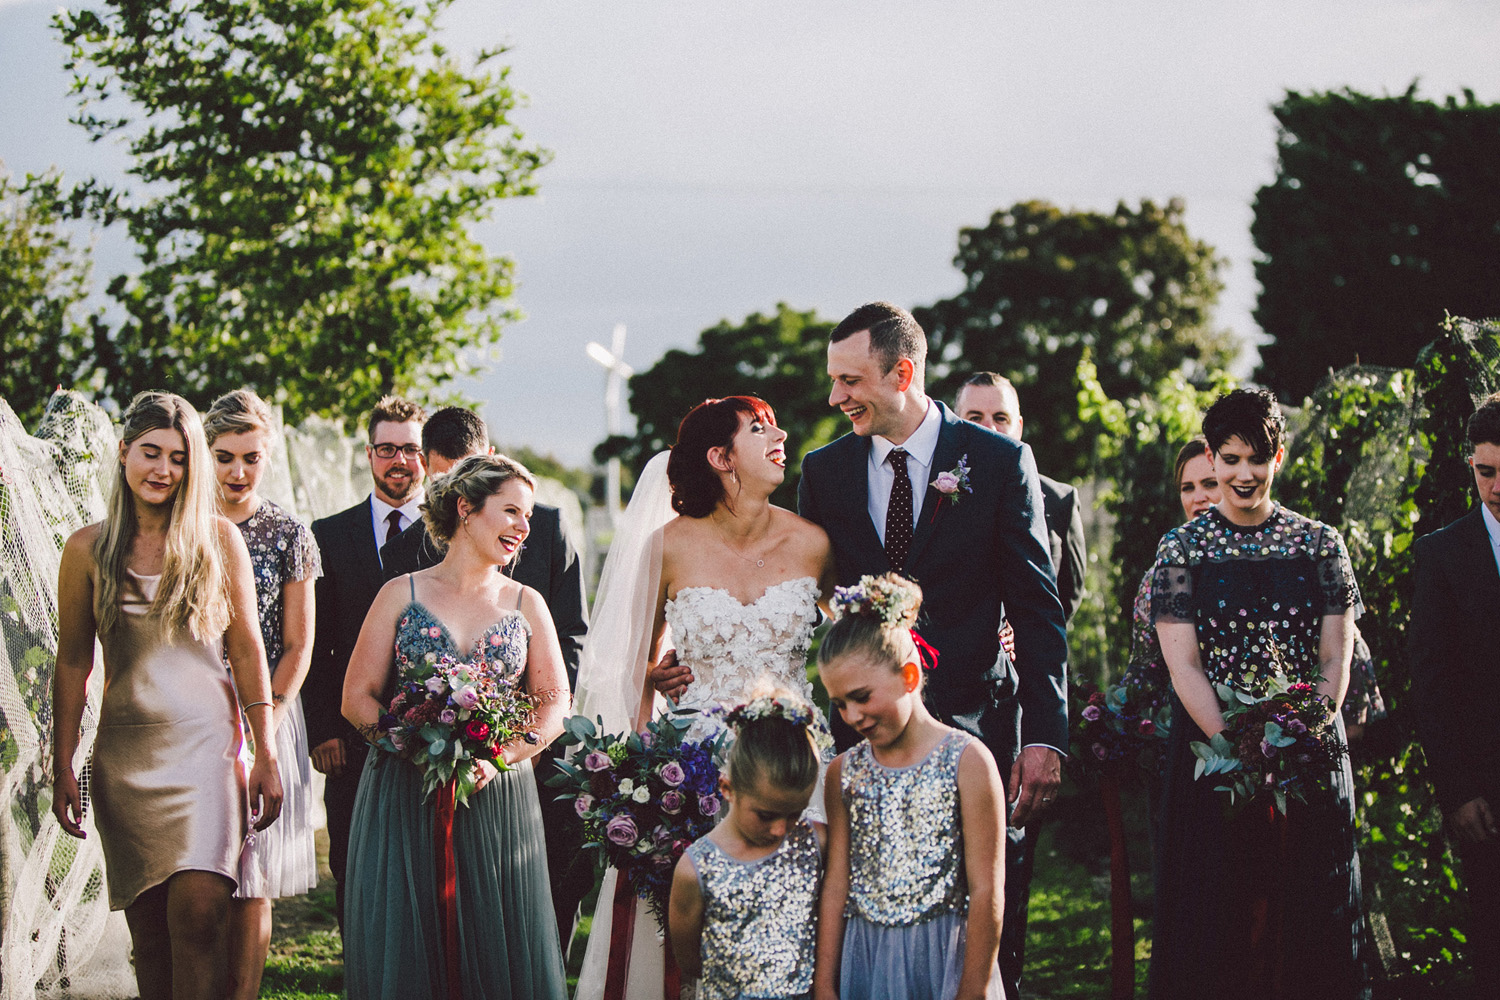 Sarah_McEvoy_Poppies_Wedding_Wairarapa_043.jpg